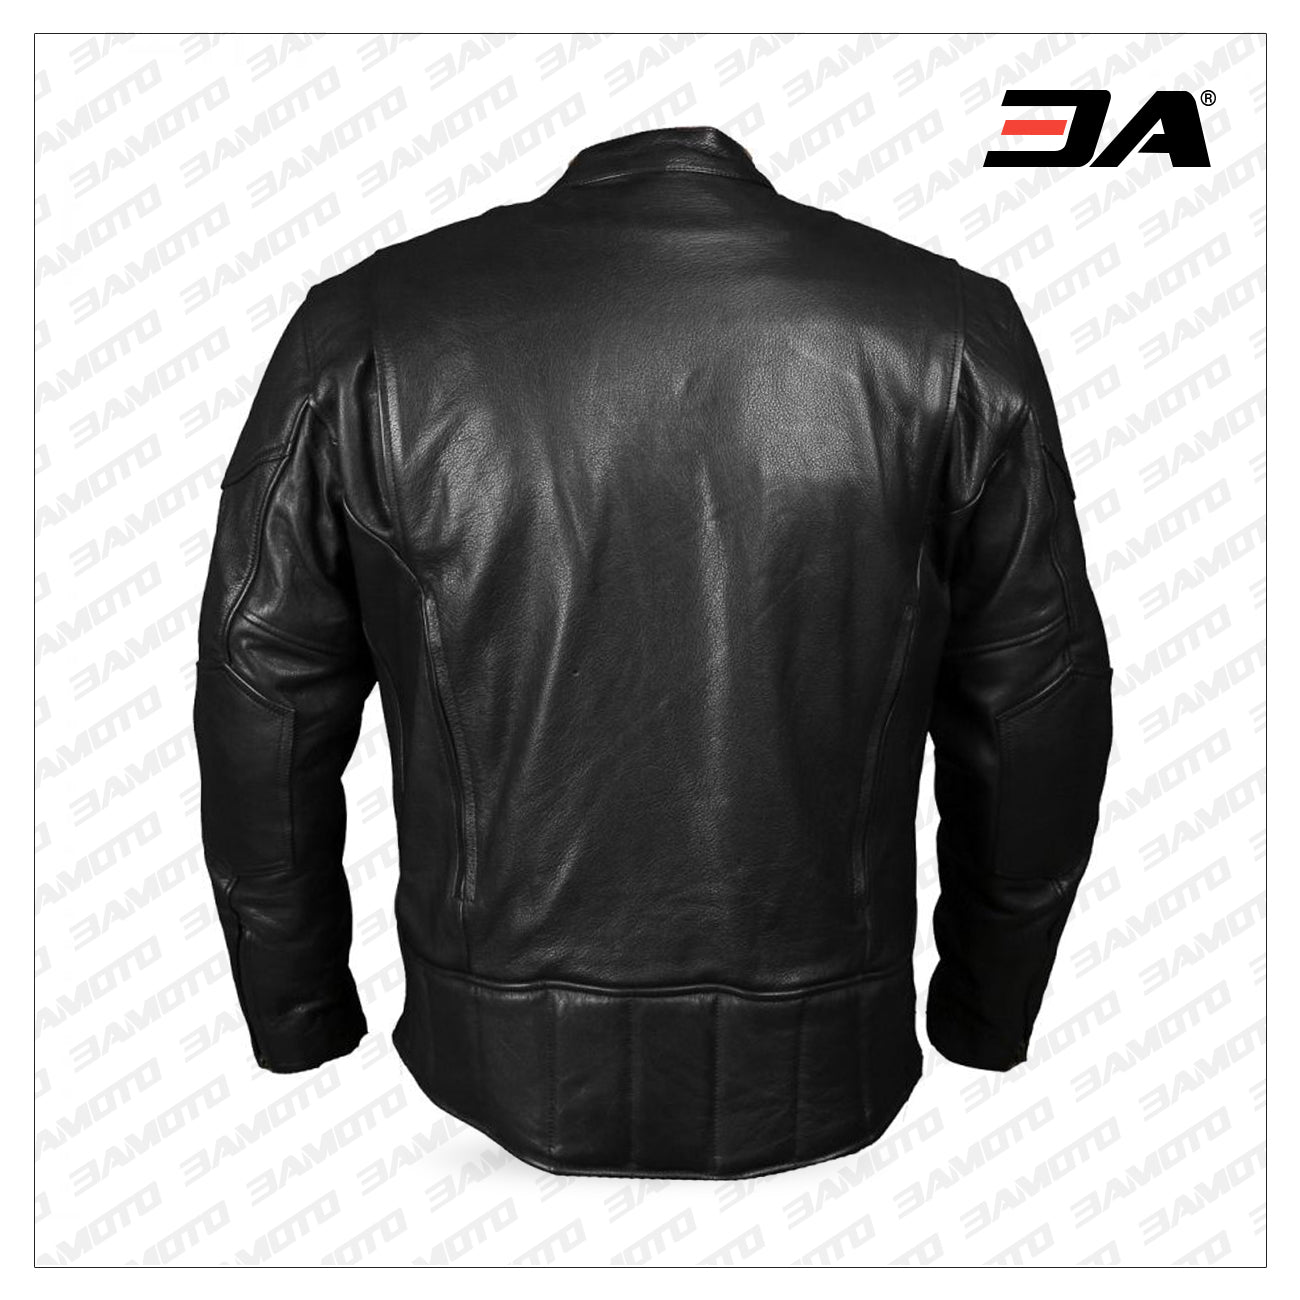 III-Fashions Mens Classic Cafe Racer Diamond Quilted Shoulders Biker Red Armored Slim Fit Motorcycle Leather Jacket